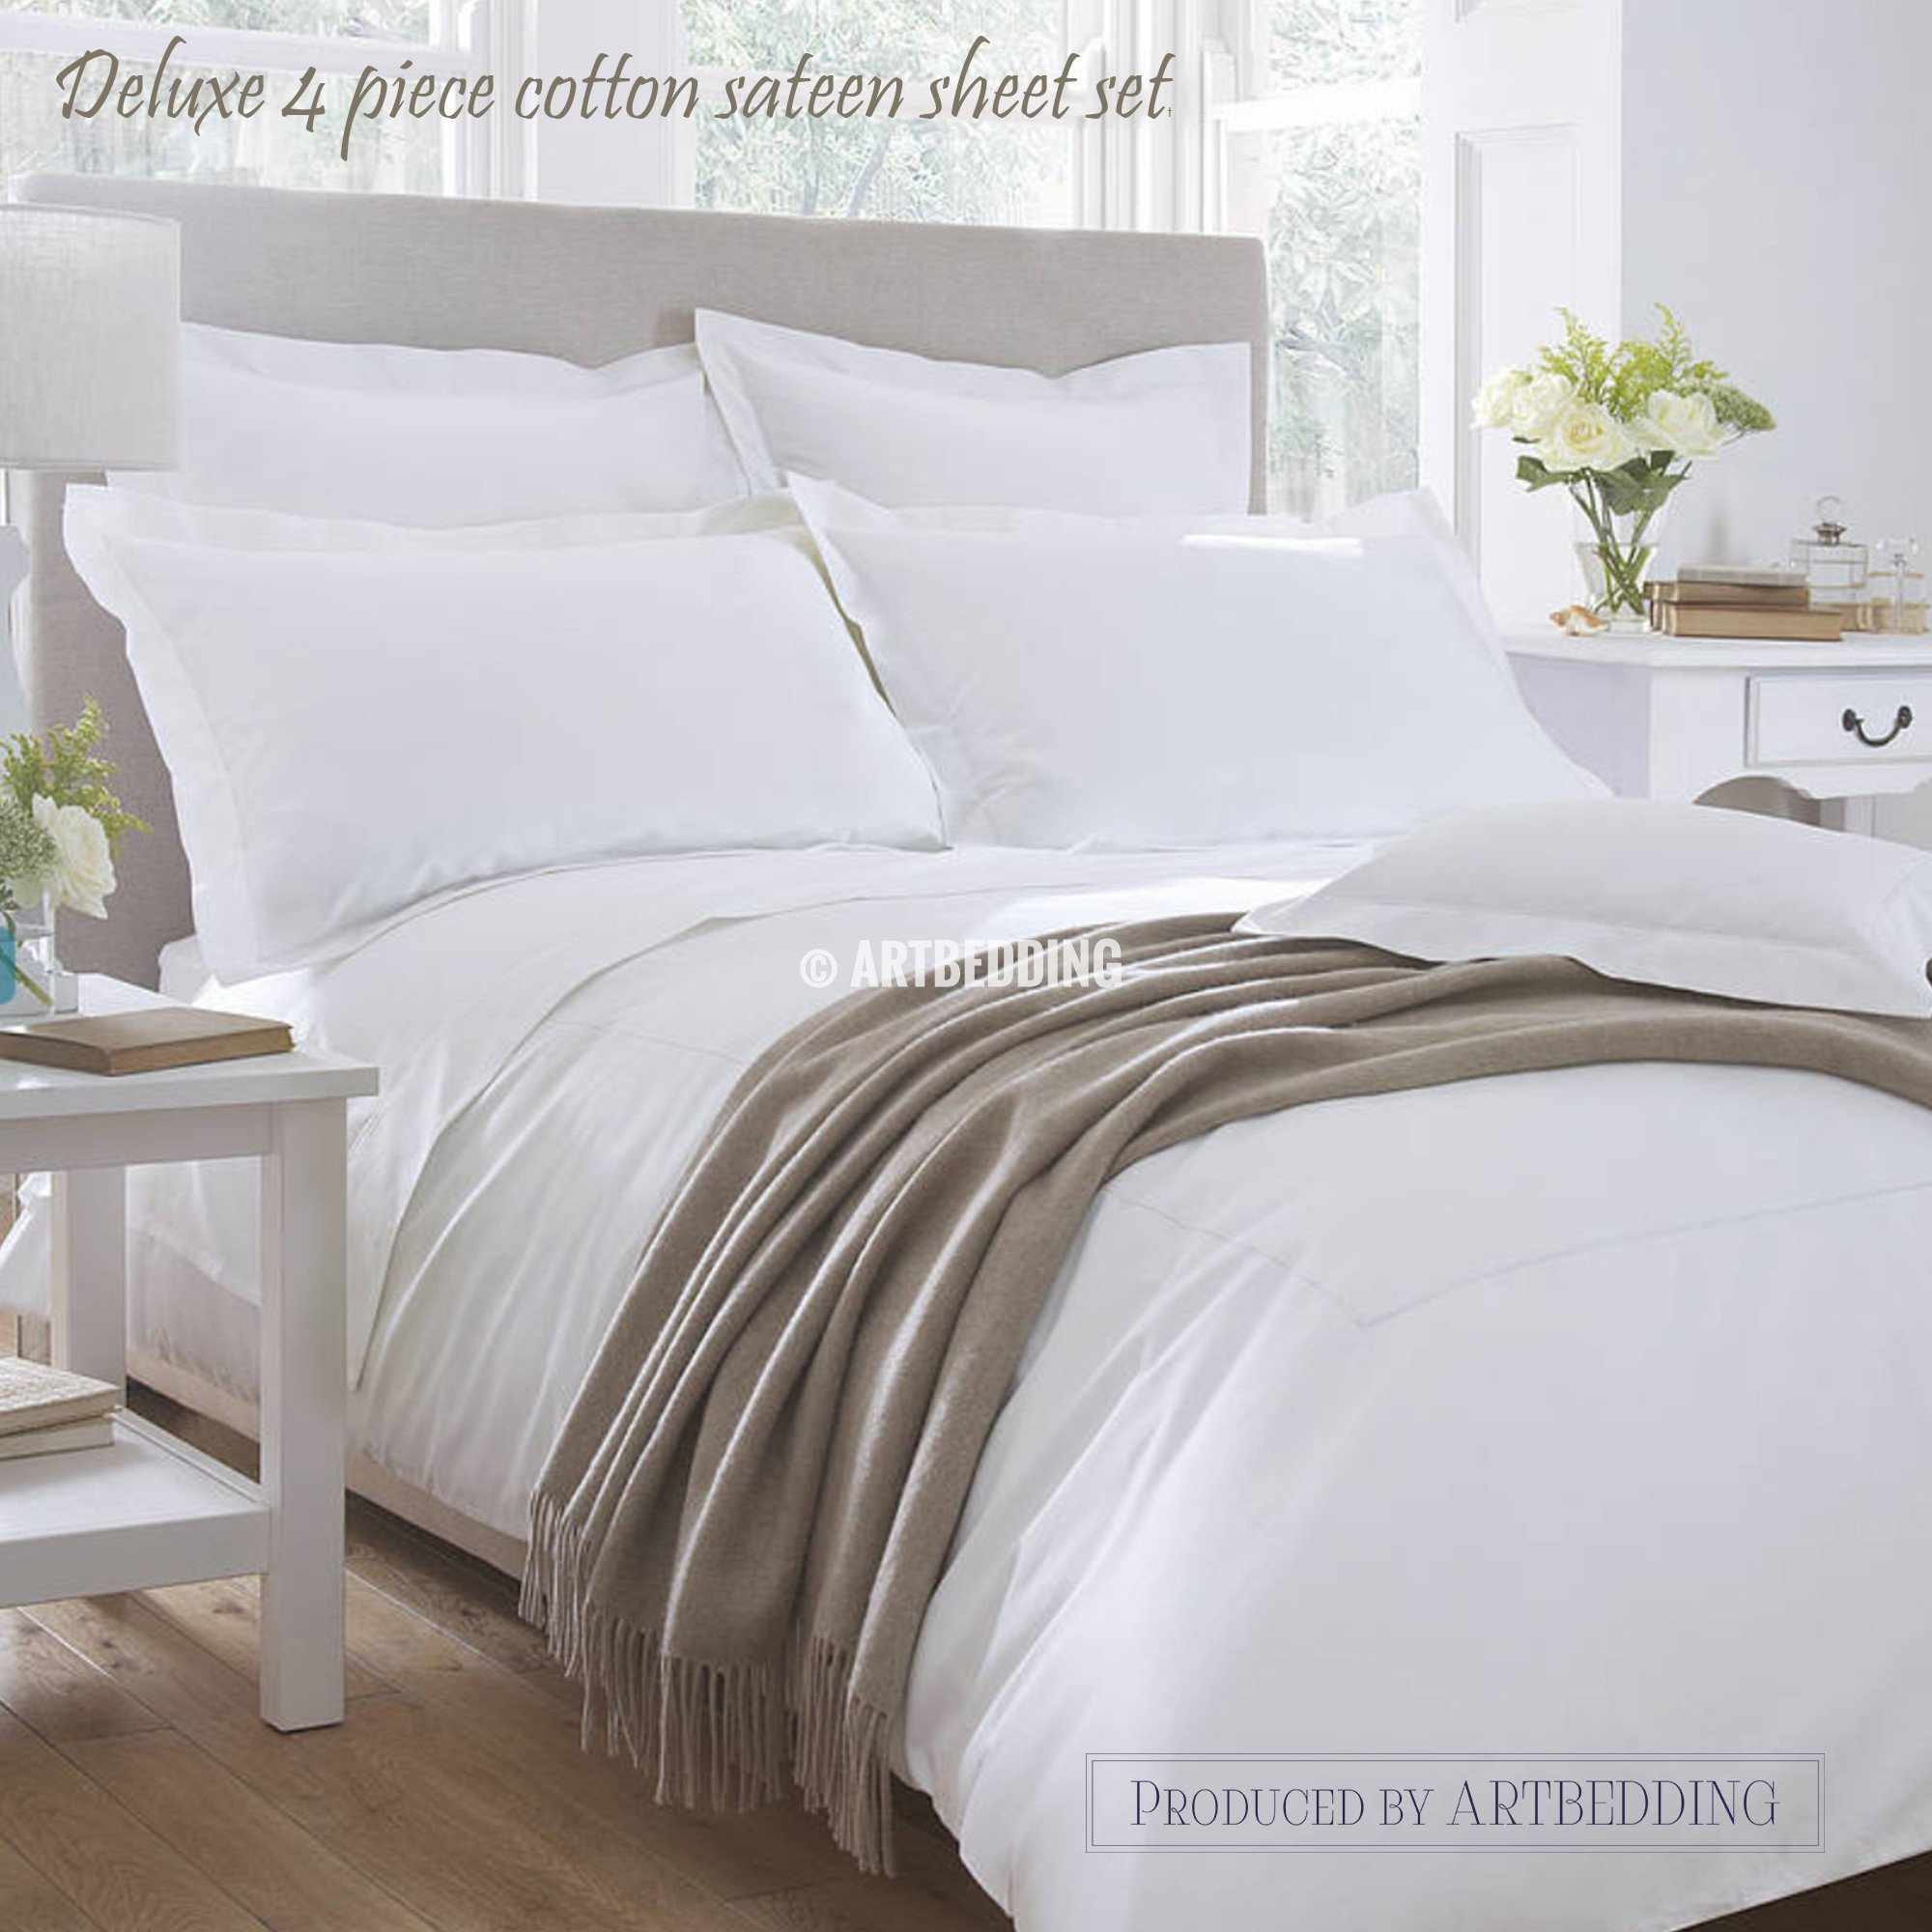 ... 560 Thread Count Deluxe Cotton Sateen Sheet Set, 560 Thread Count ...